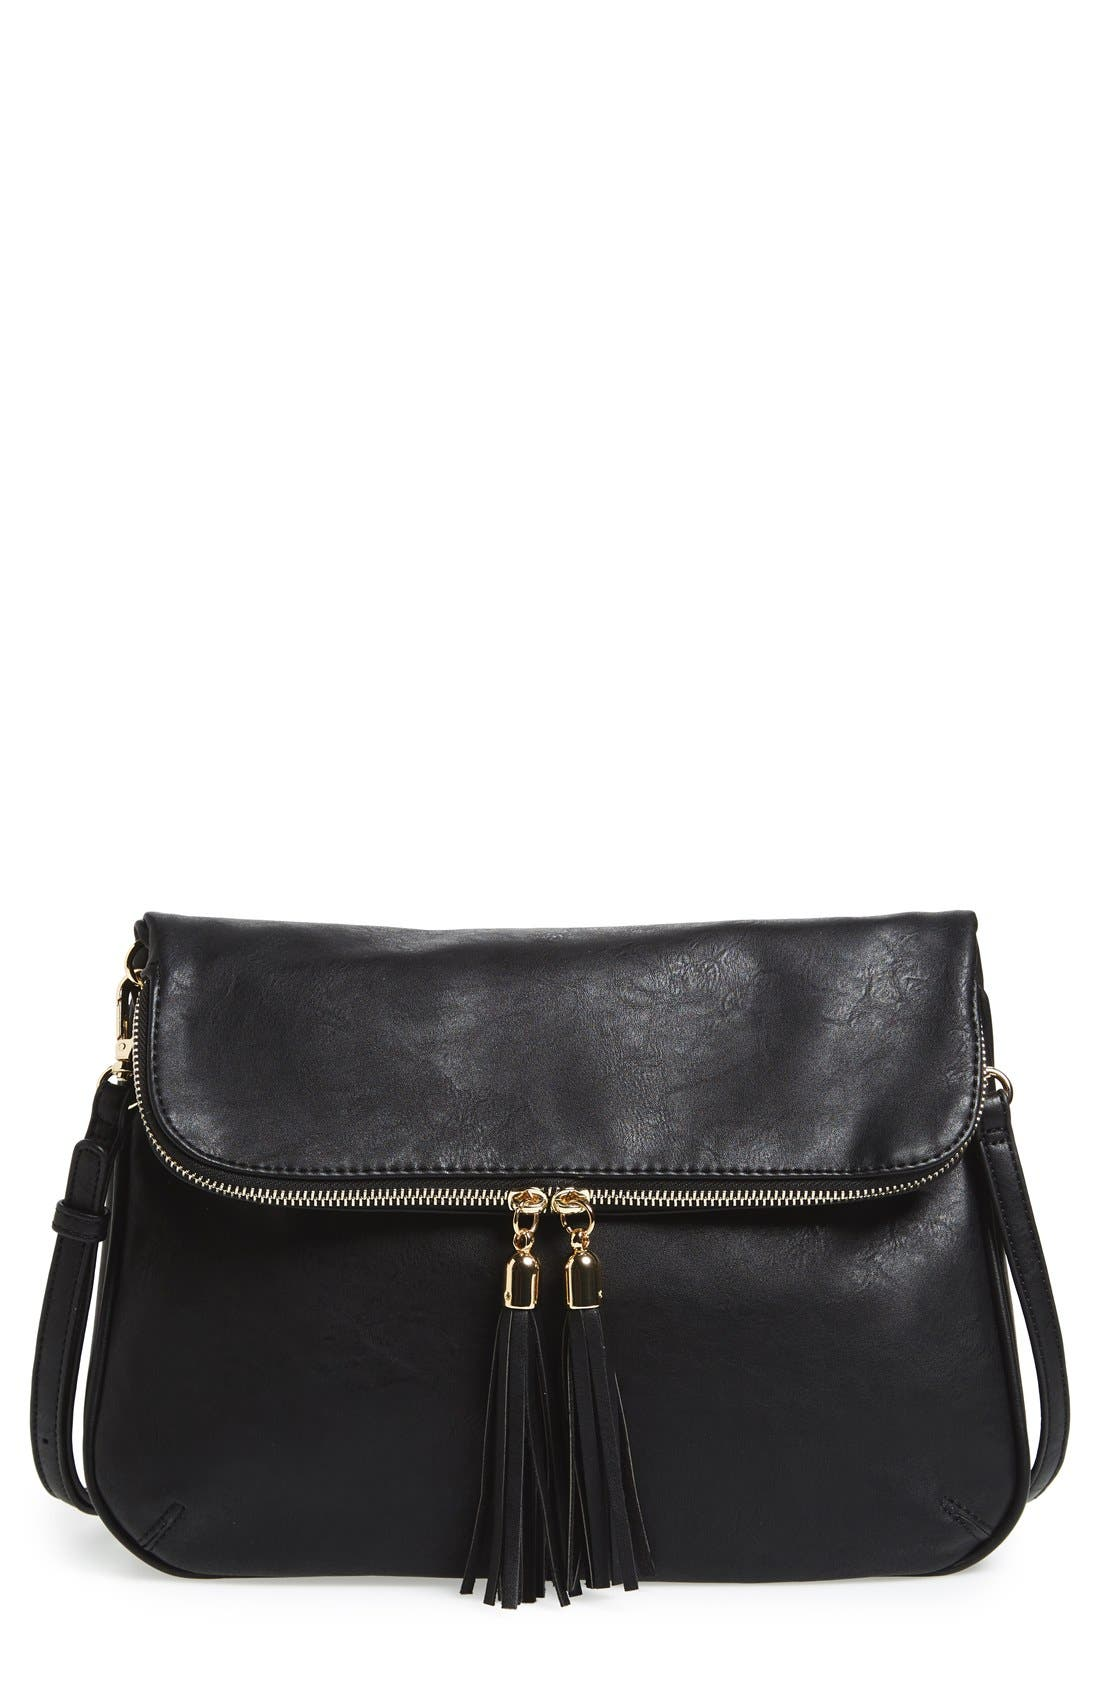 BP. Foldover Crossbody Bag